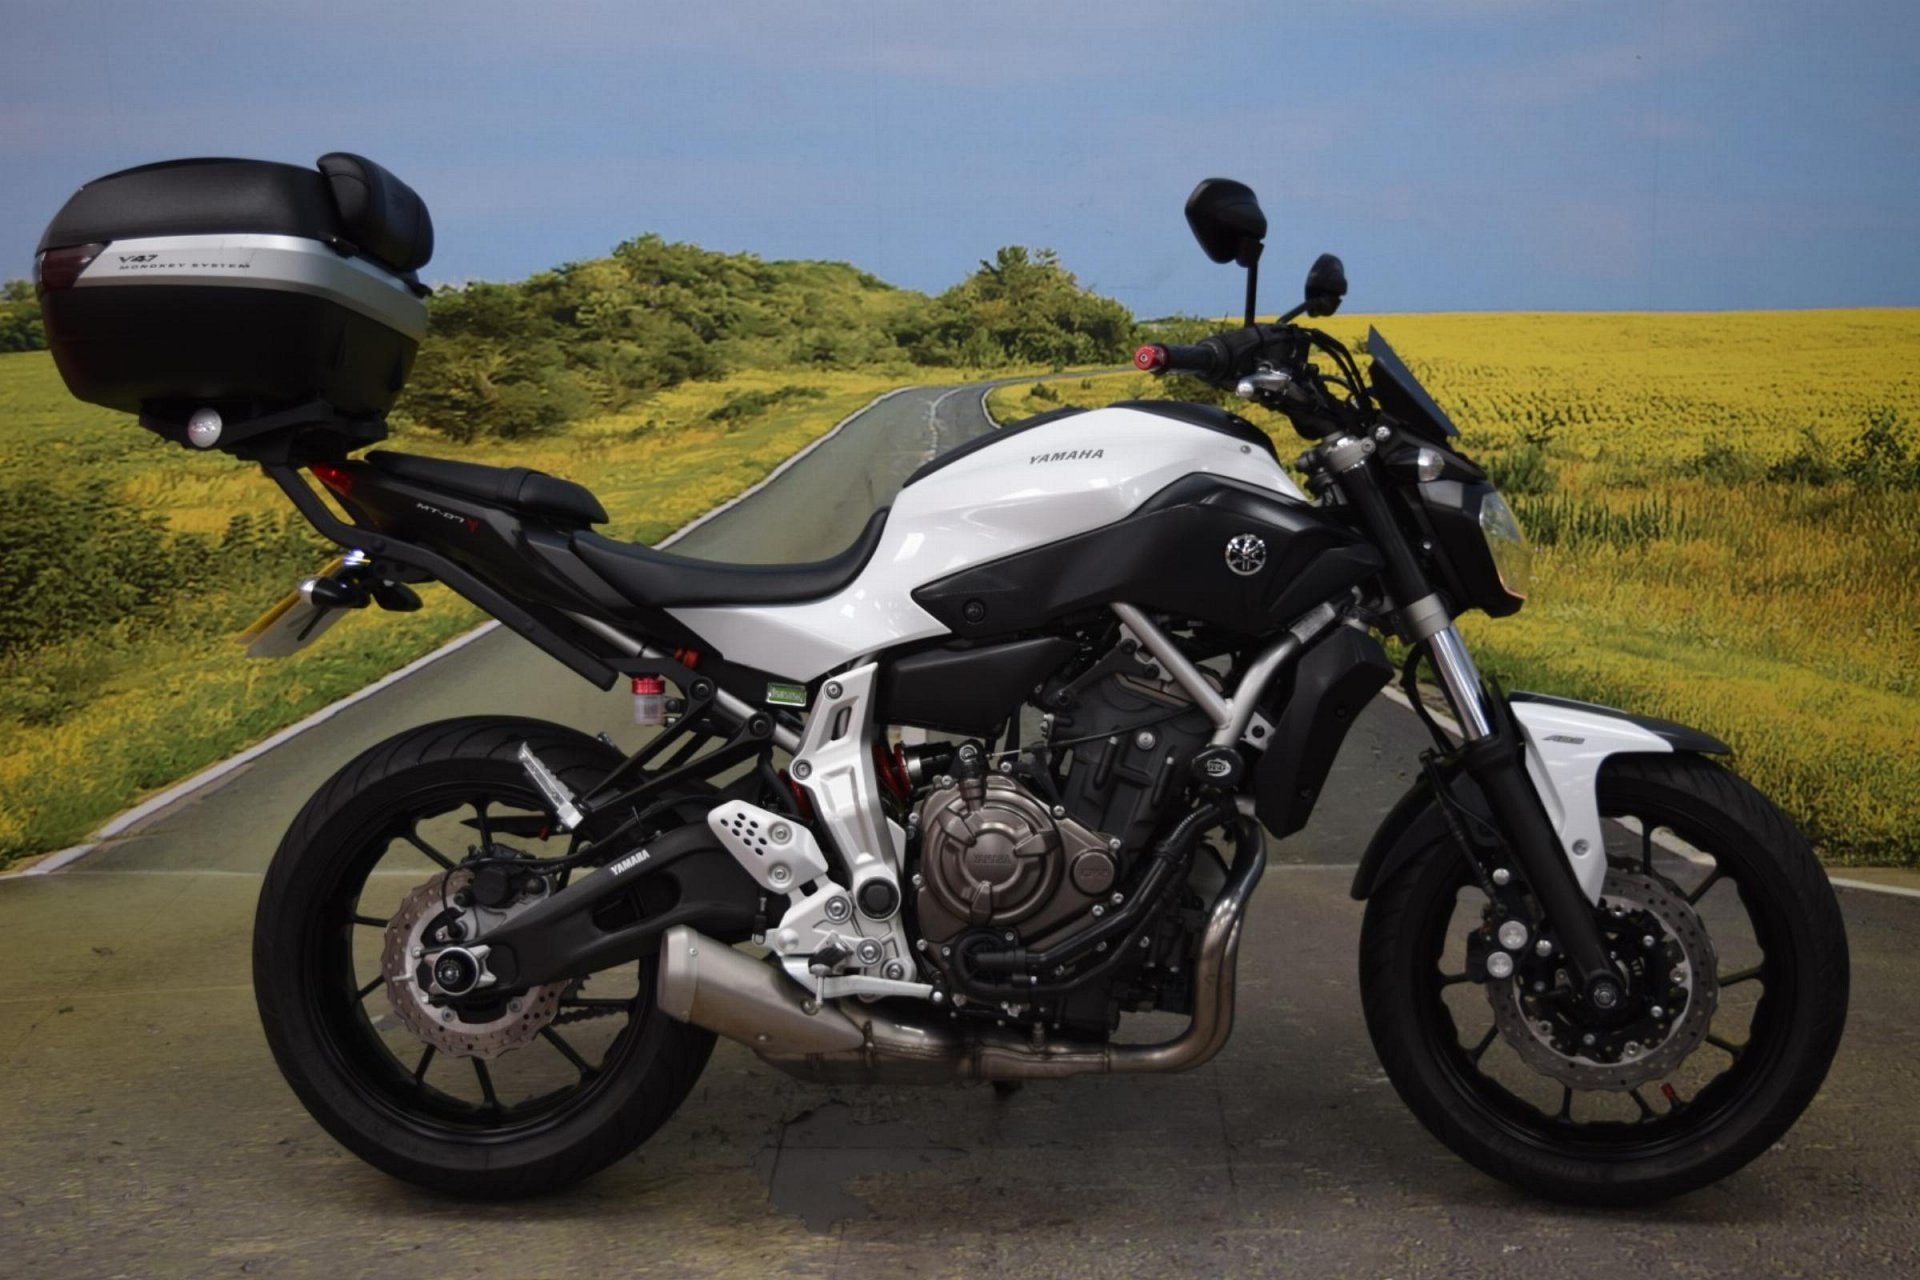 2014 Yamaha MT 07 for sale in Staffordshire